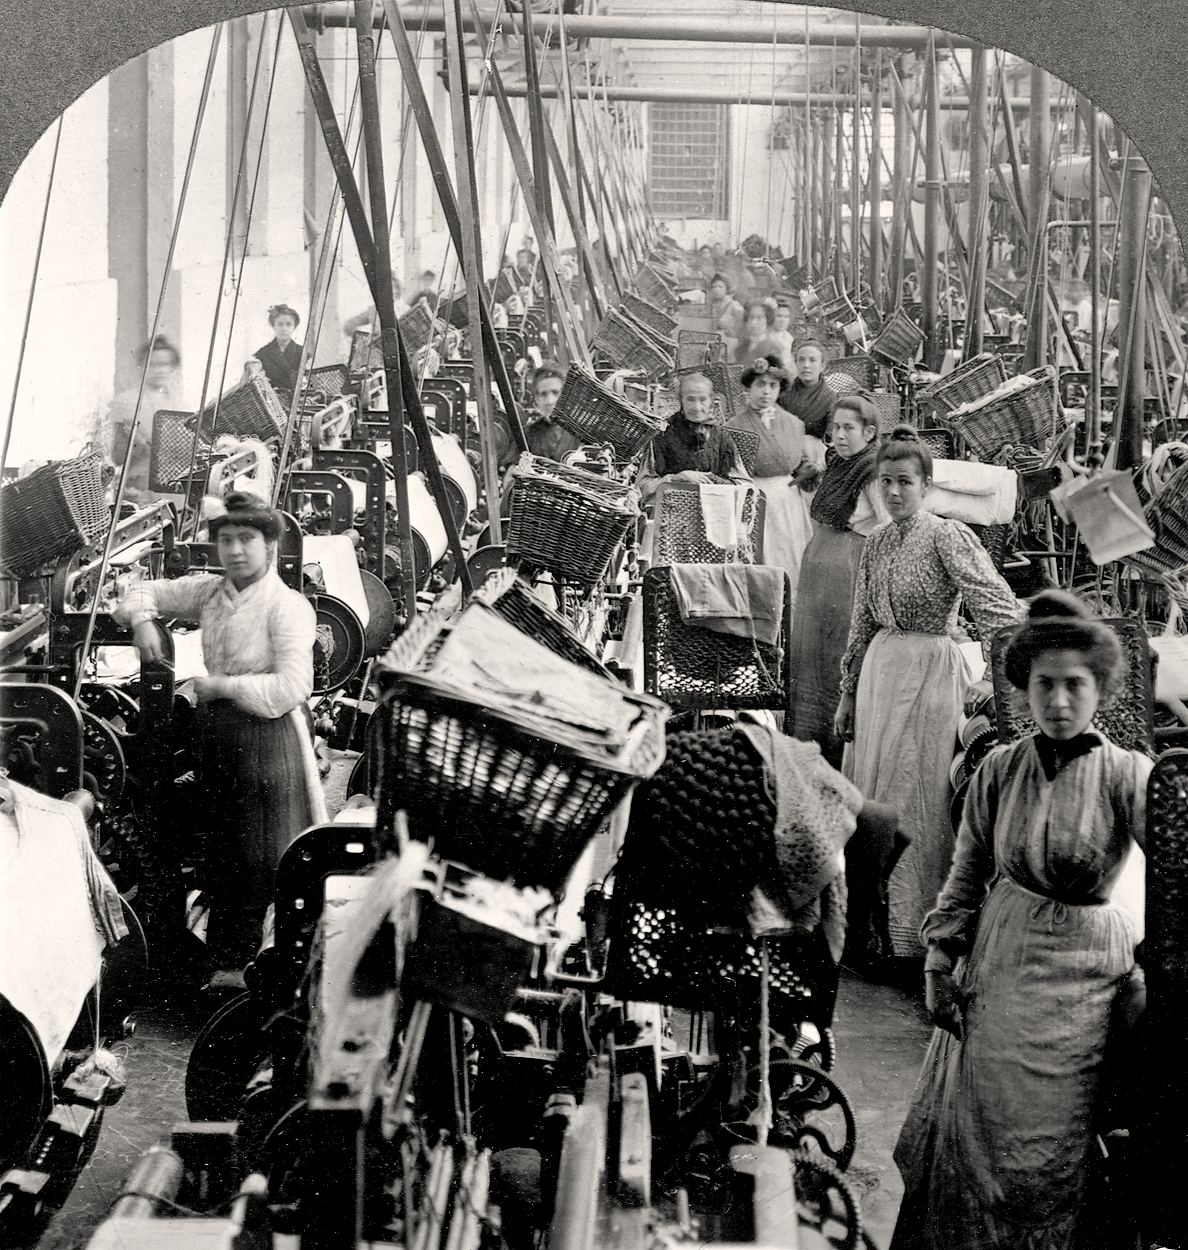 How workers in the us were affected during the industrialization